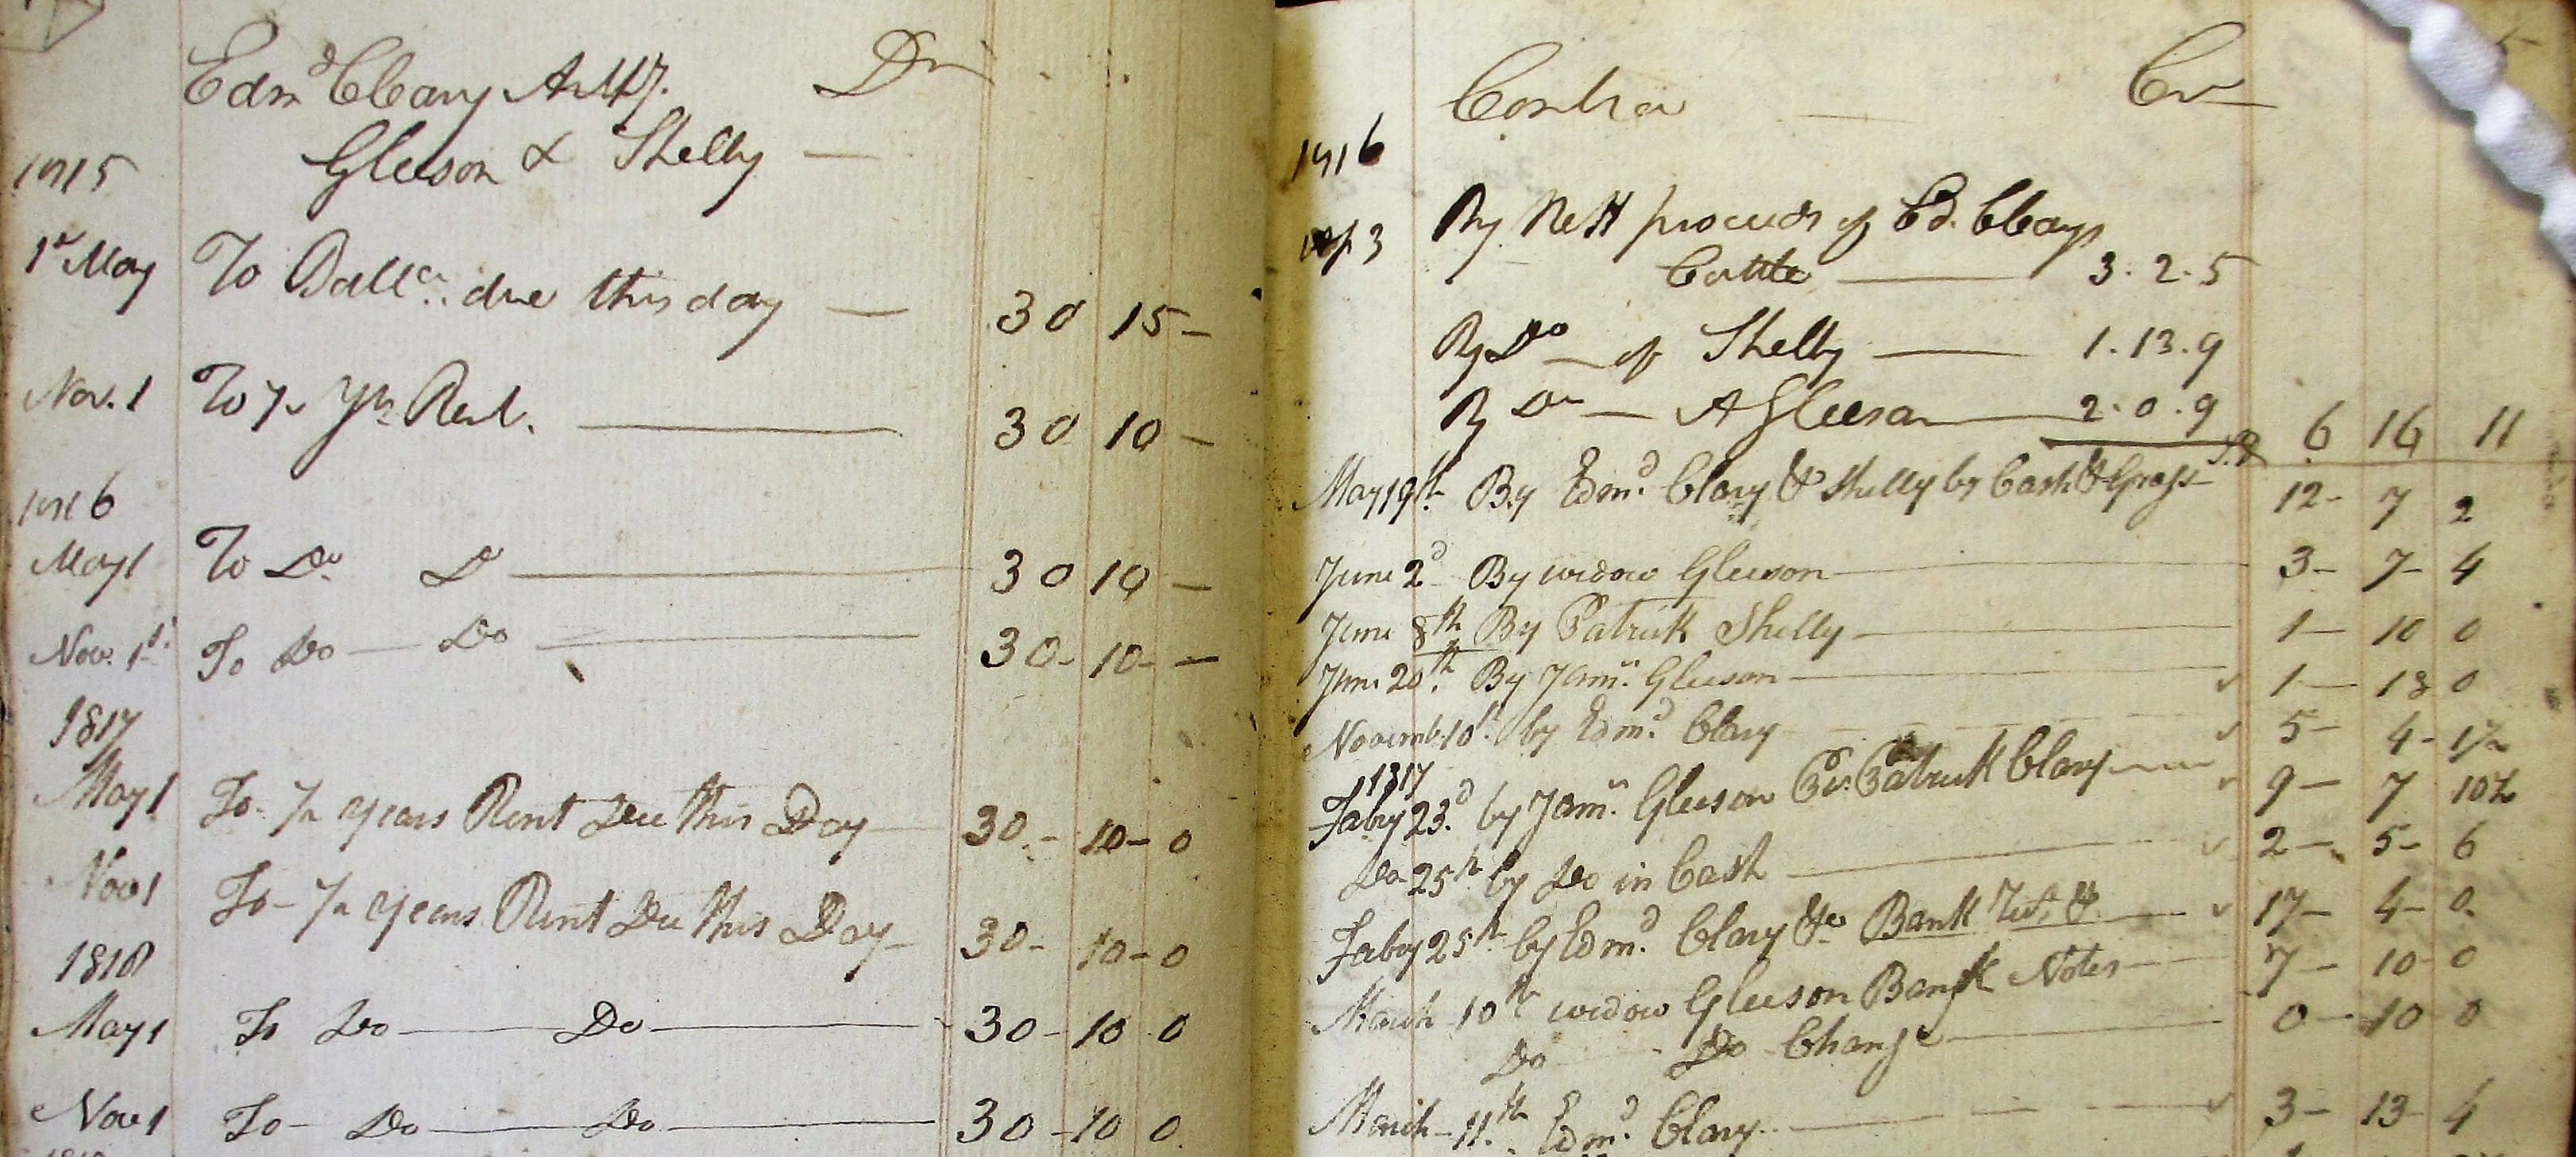 Rental of the estates of John Frederick Trant in and around Dovea, Co. Tipperary, 1815-37. NLI, Ms. 1756